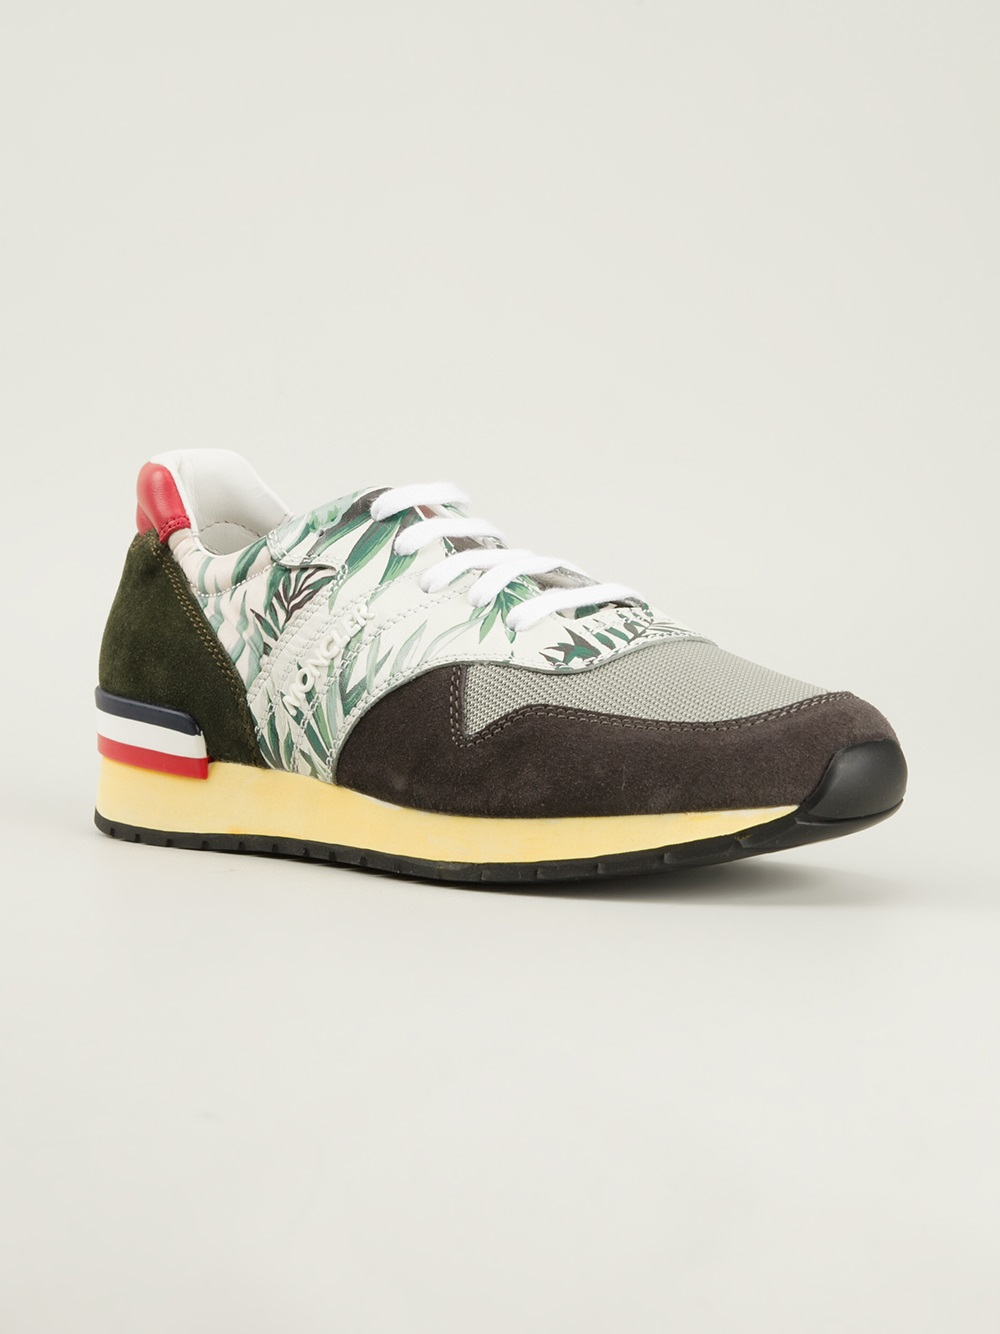 moncler san diego sneakers in multicolor for